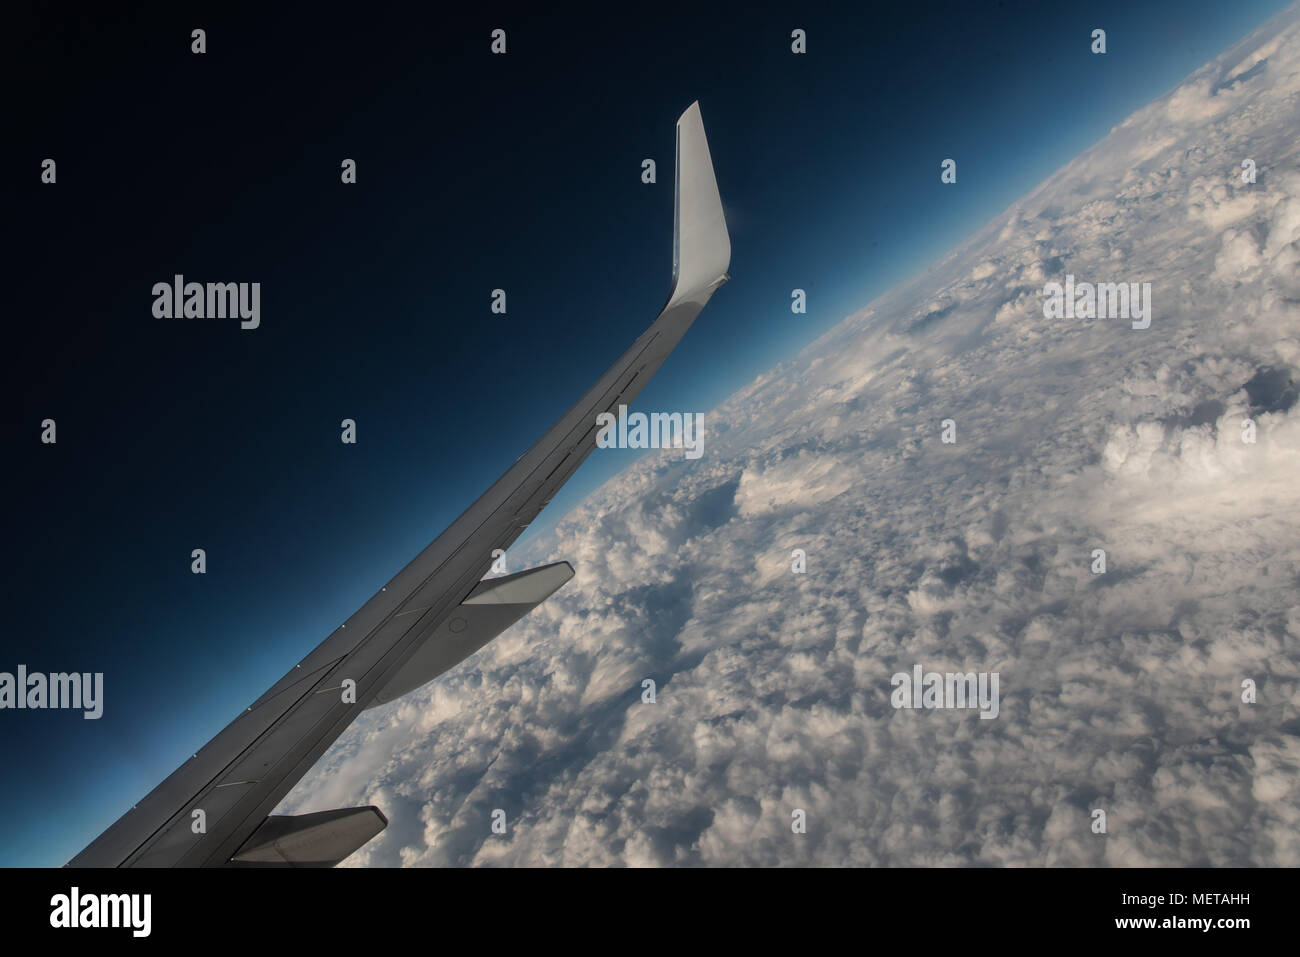 Jetliner Wing Over Clouds - Stock Image